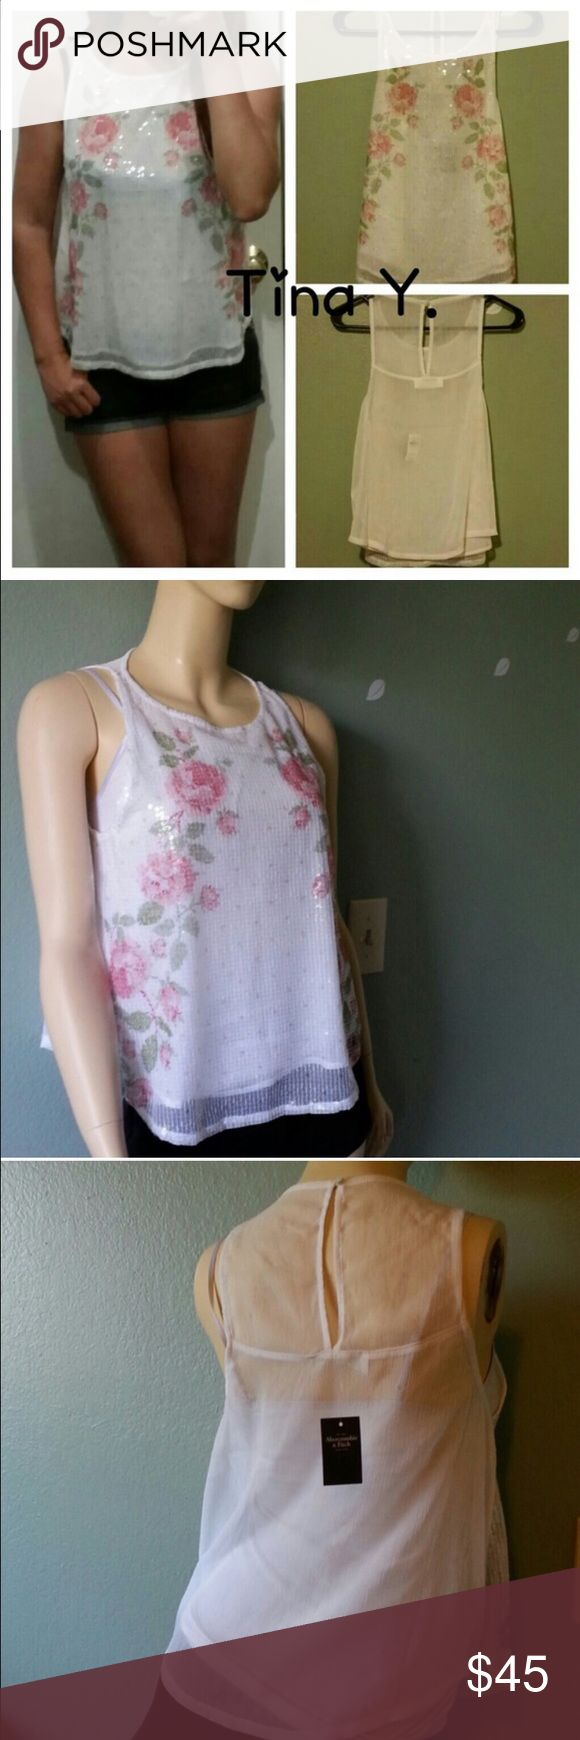 New Abercrombie and Fitch • Sequin Floral Top Beautiful and bold sequin floral! What women does not like hearing how beautiful she is and how much her clothes compliment her? This top is sure to make anyone stand out! Abercrombie & Fitch Tops Tank Tops